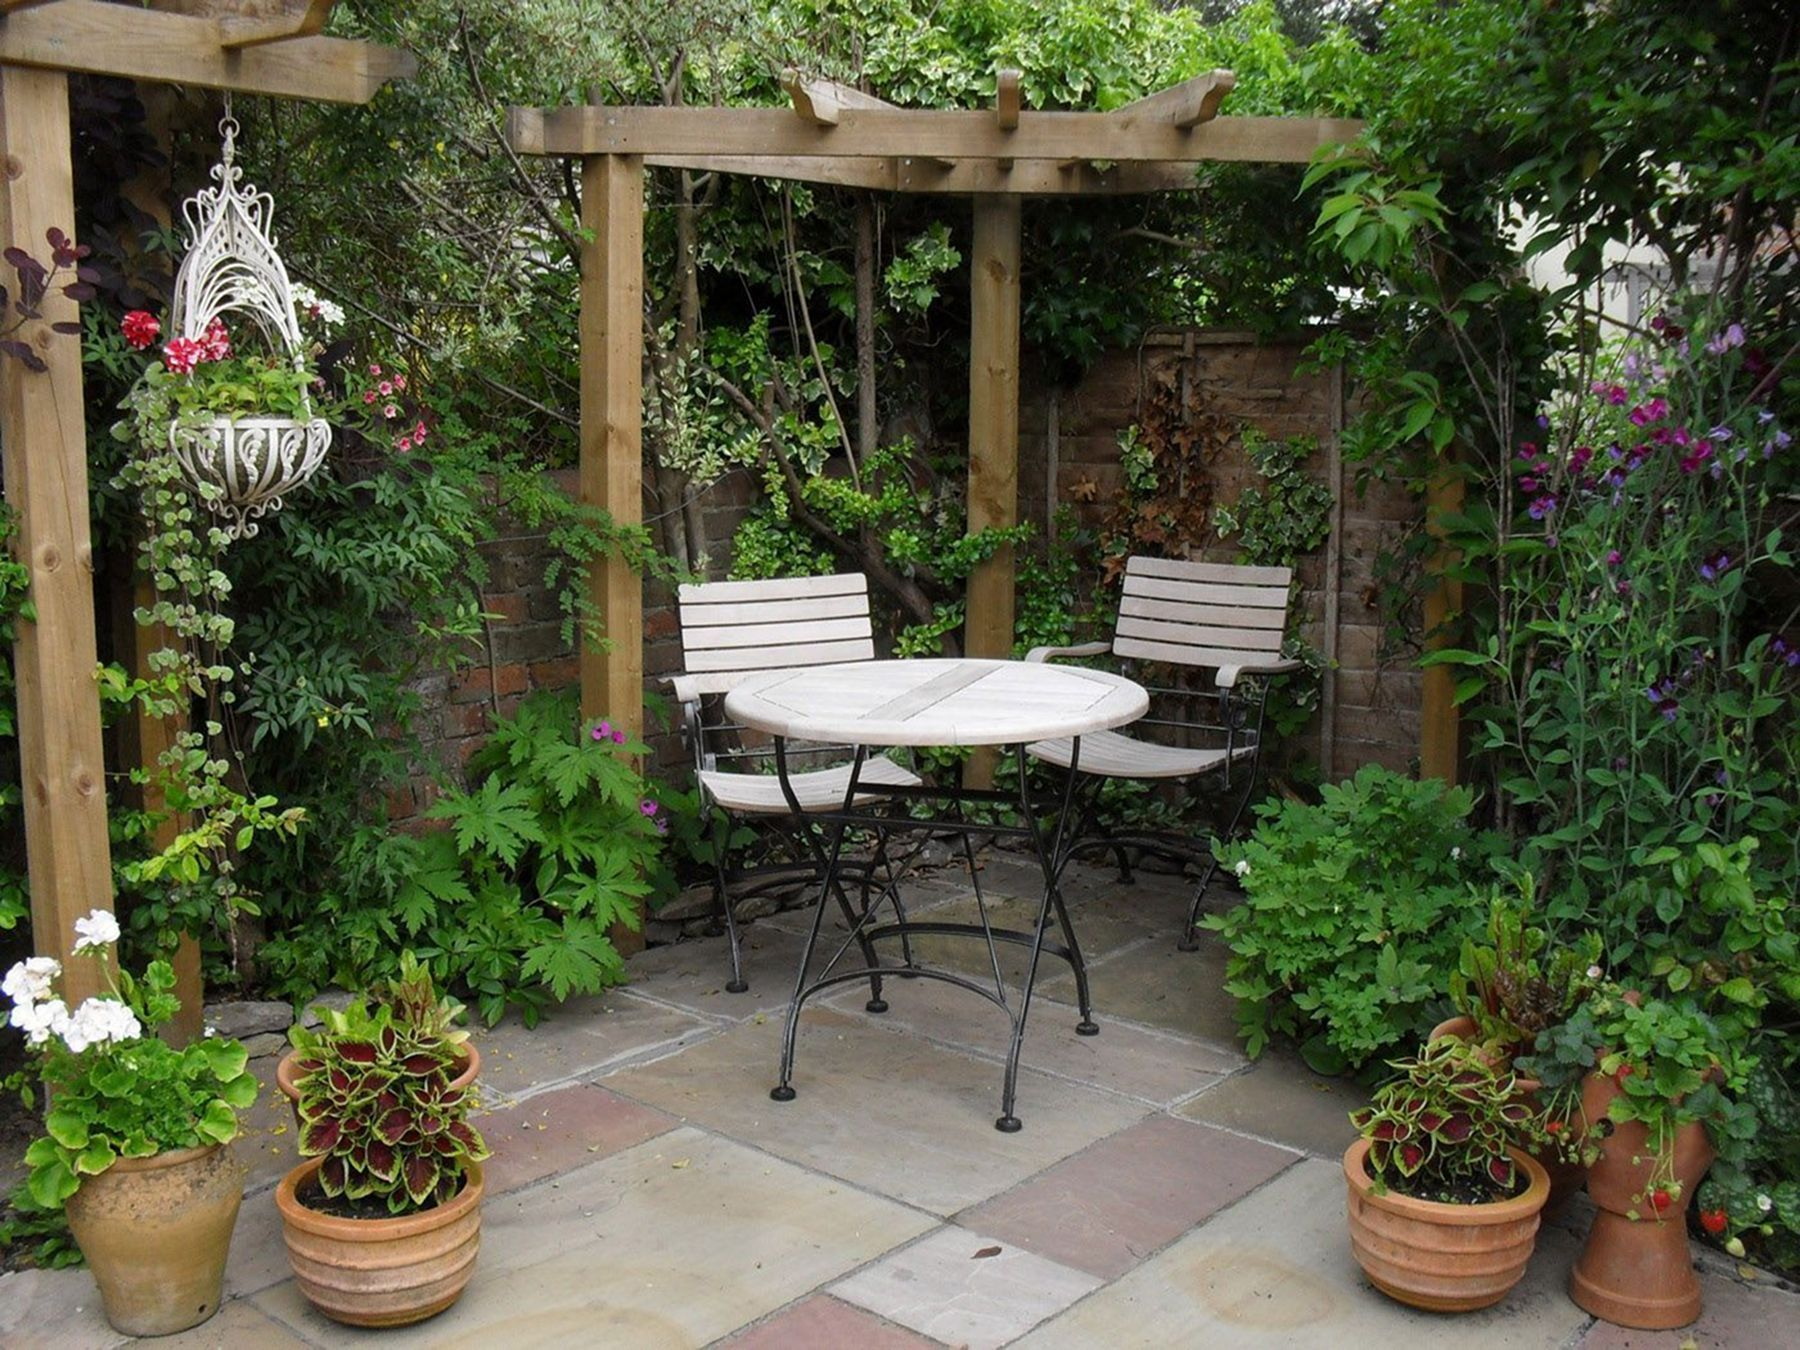 2caf466e627fbf52b6faed6c745994df - Pictures Of Beautiful Gardens For Small Homes